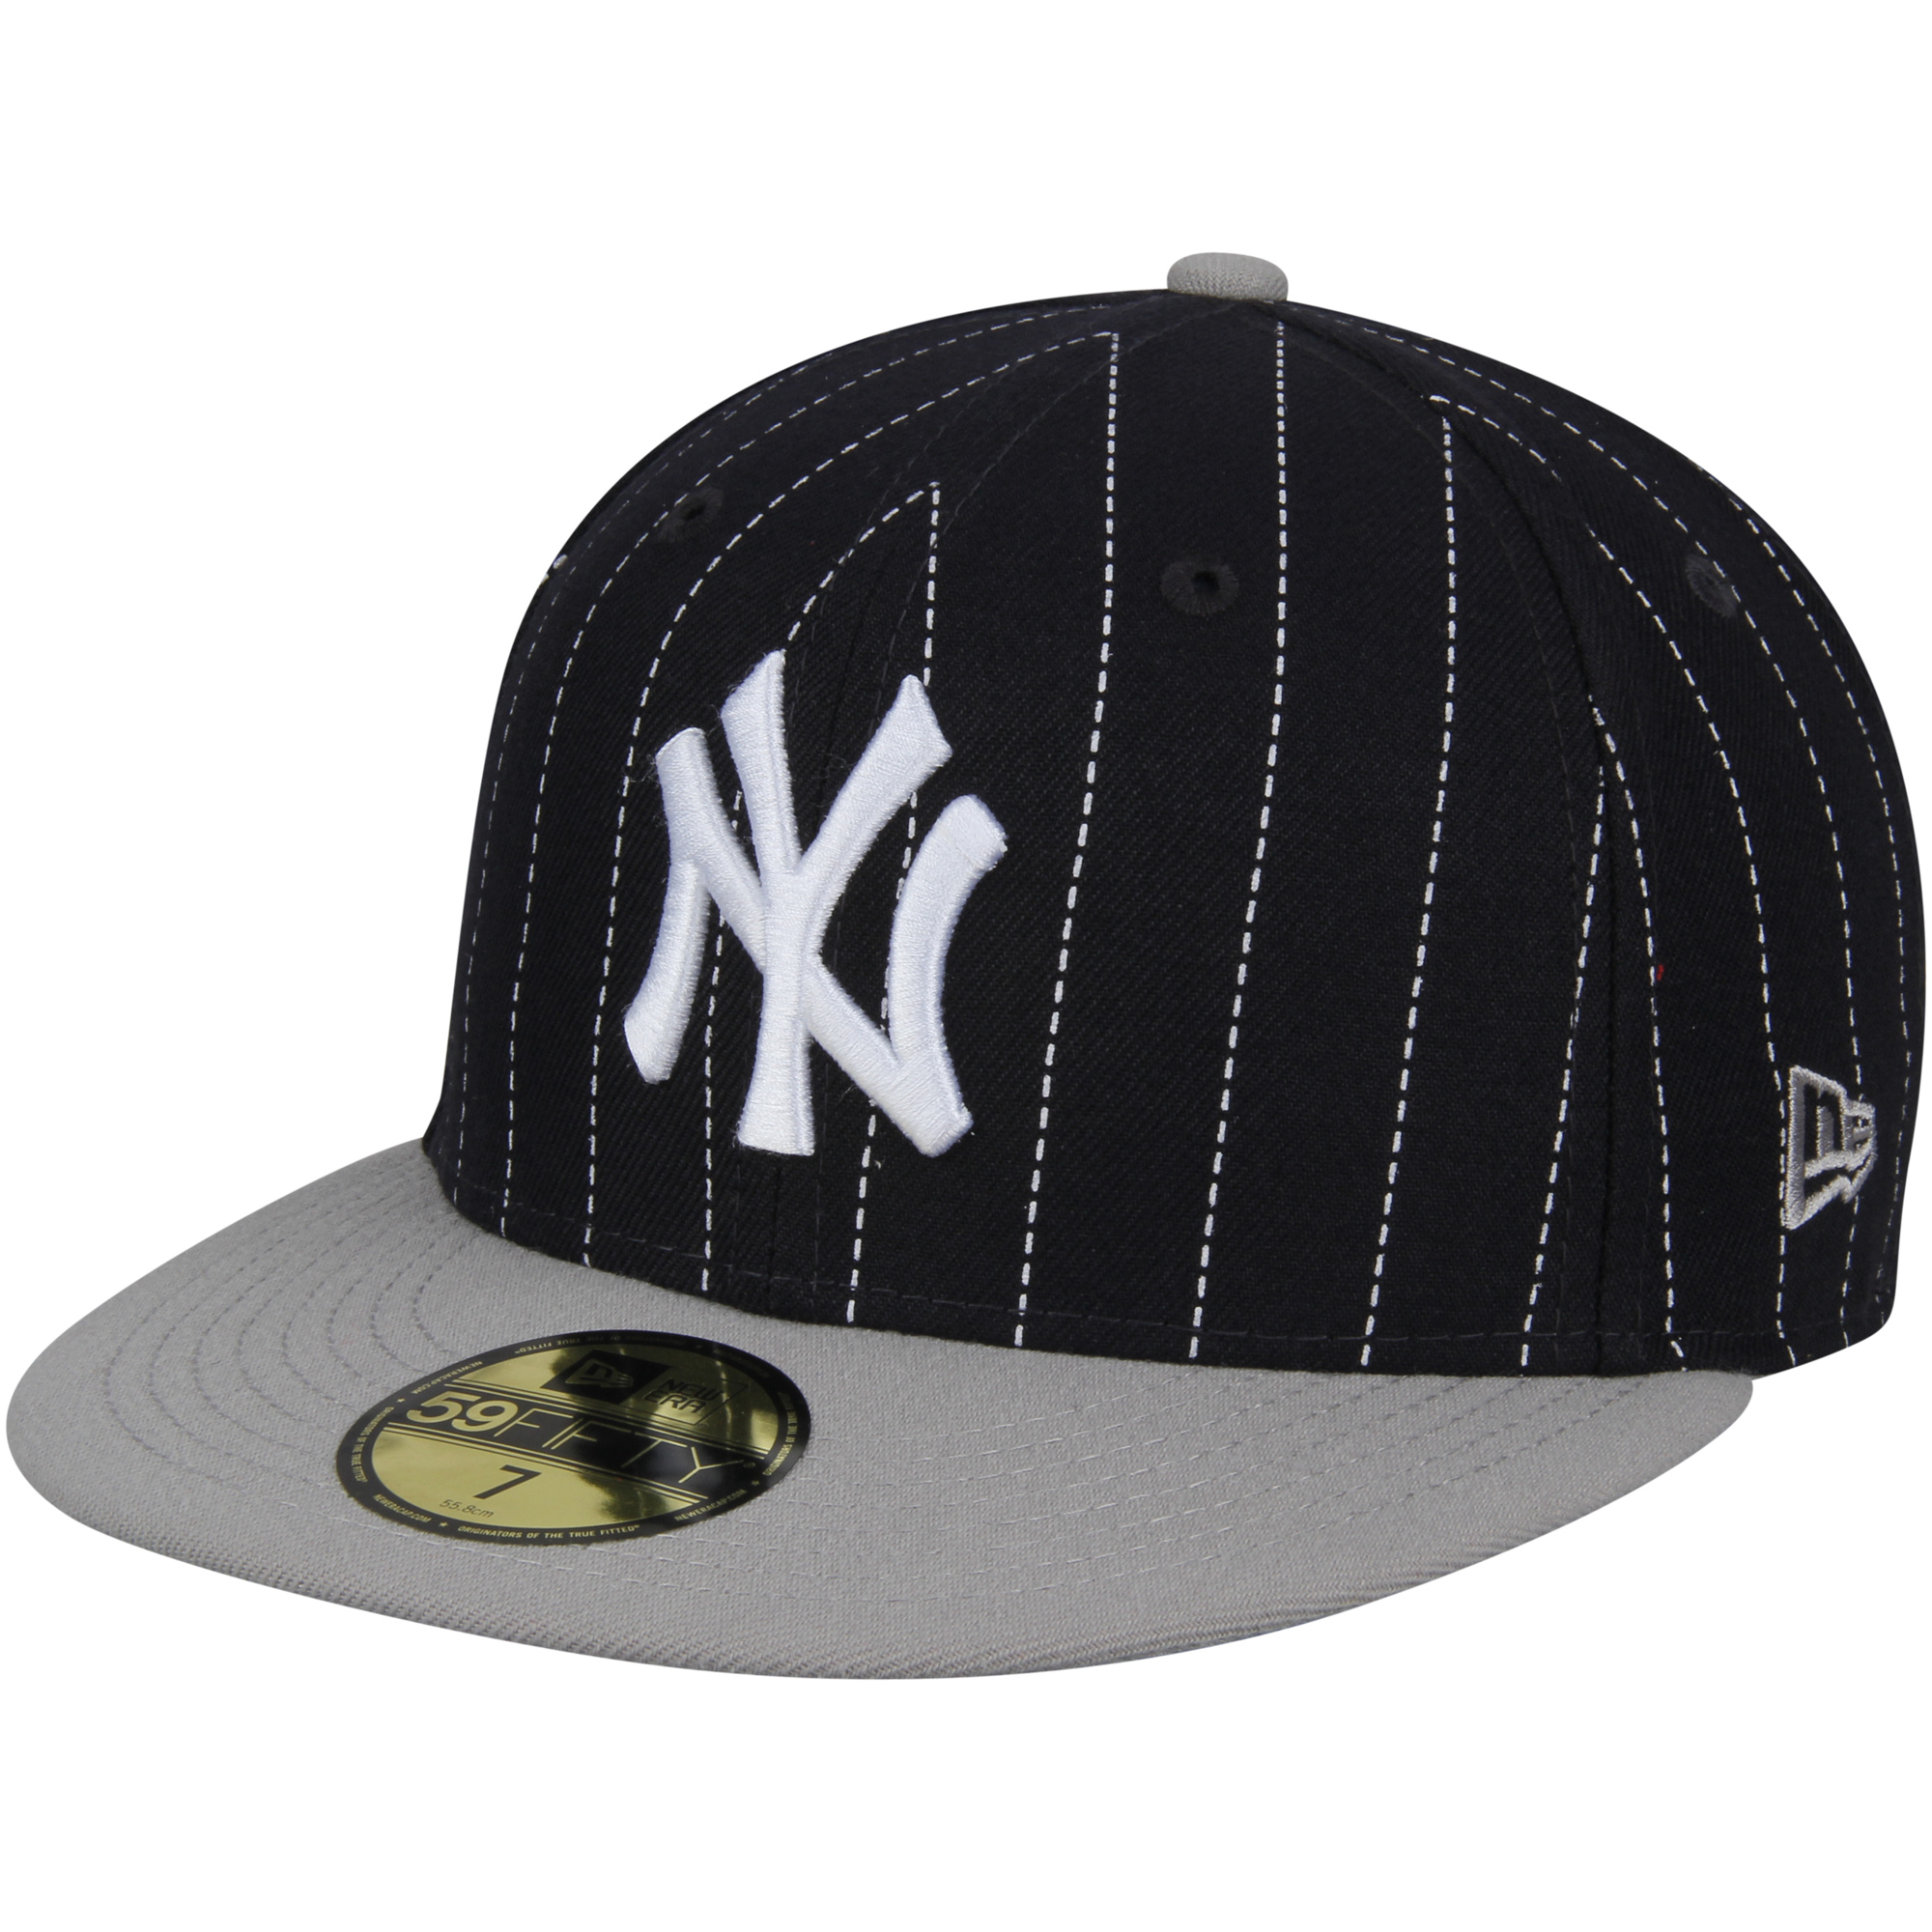 Men's New Era Navy New York Yankees Y2K Pinstripe 59FIFTY Fitted Hat